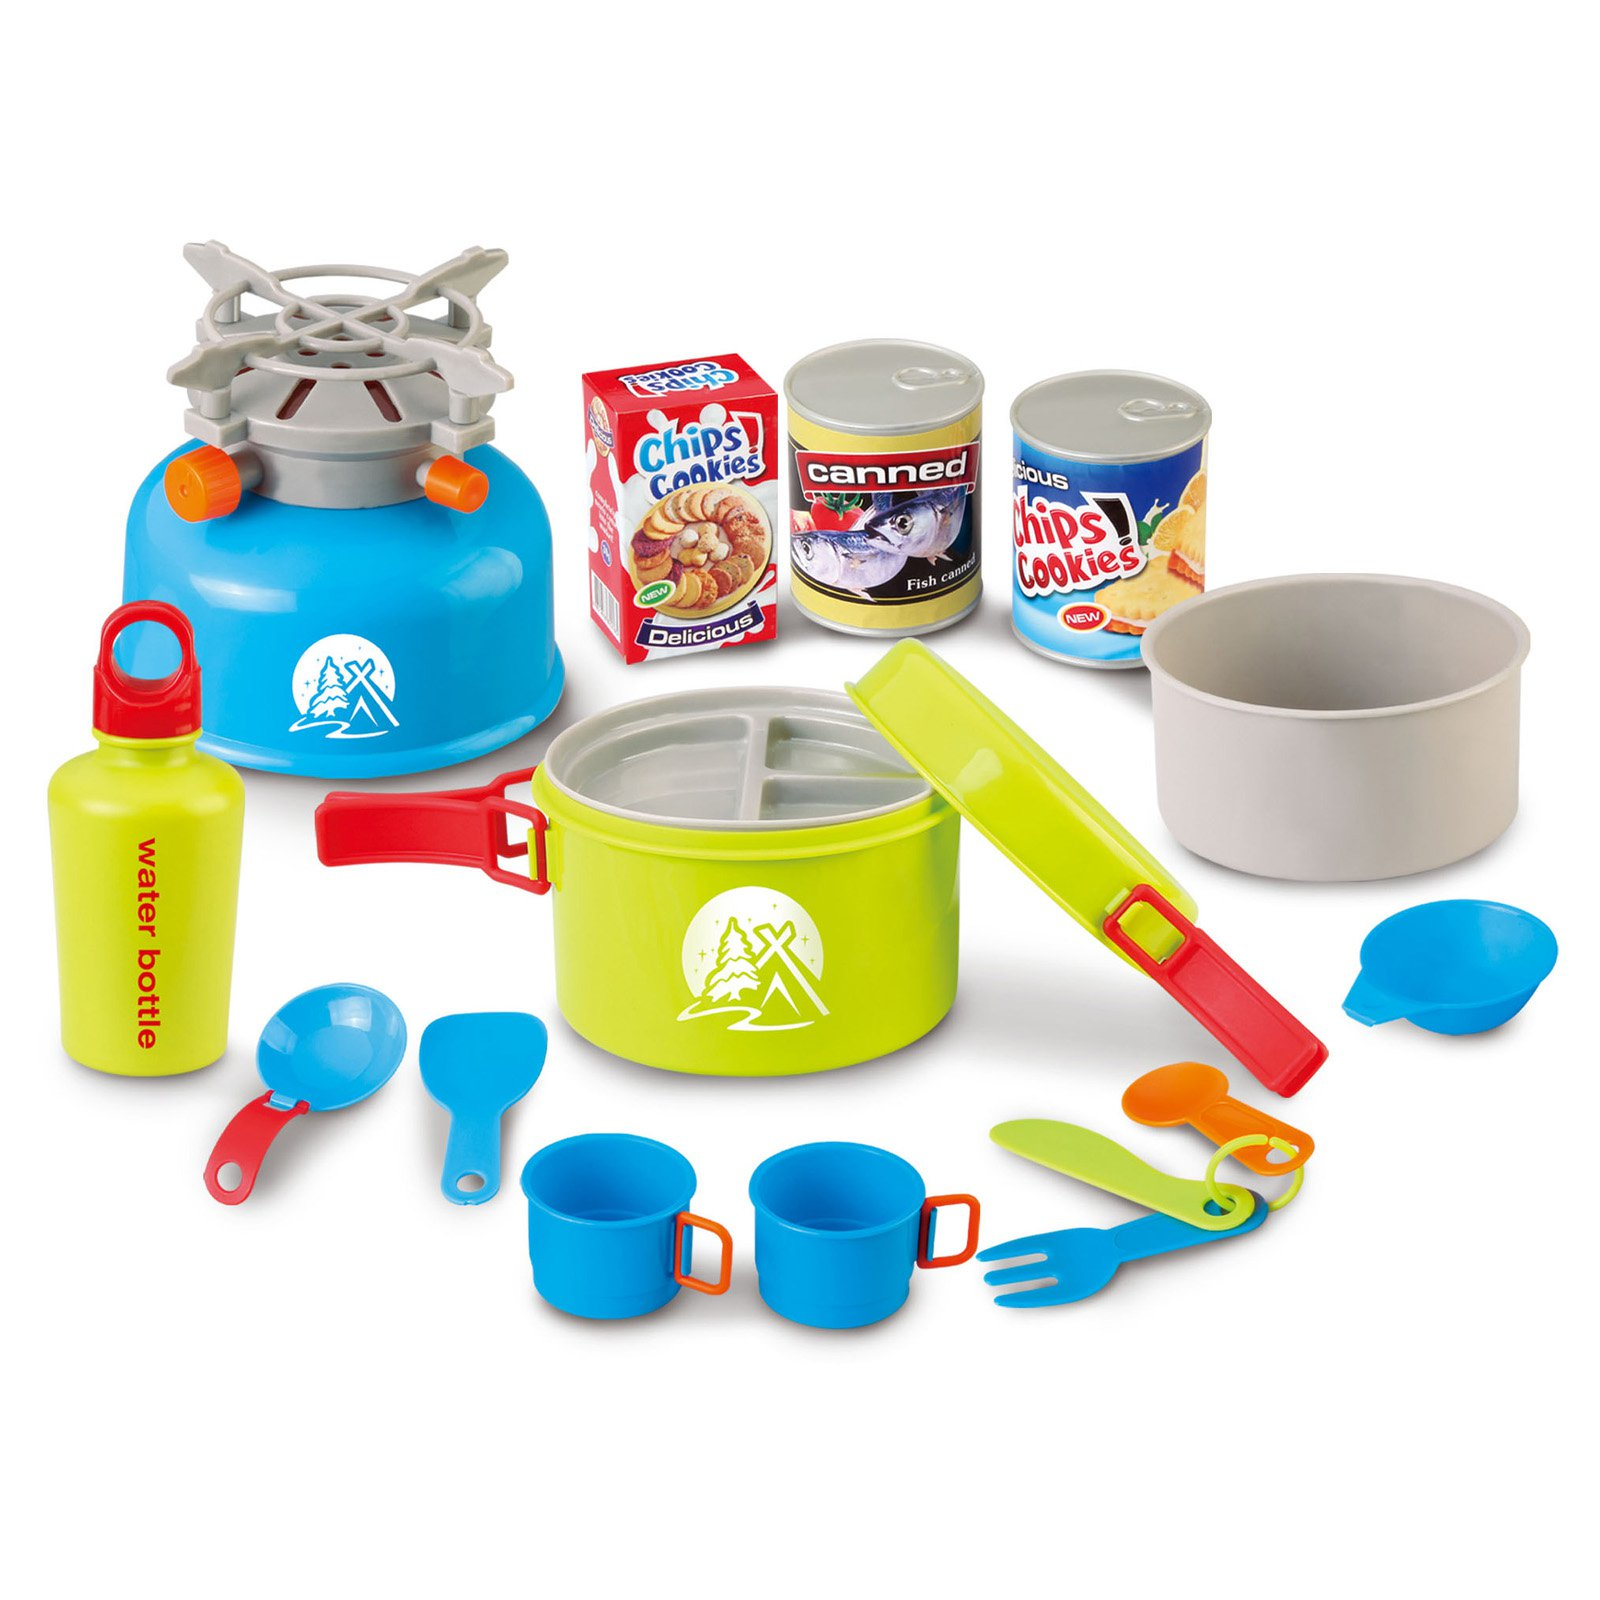 Merske Berry Toys Little Explorer 15-piece Camping Cooker Play Set